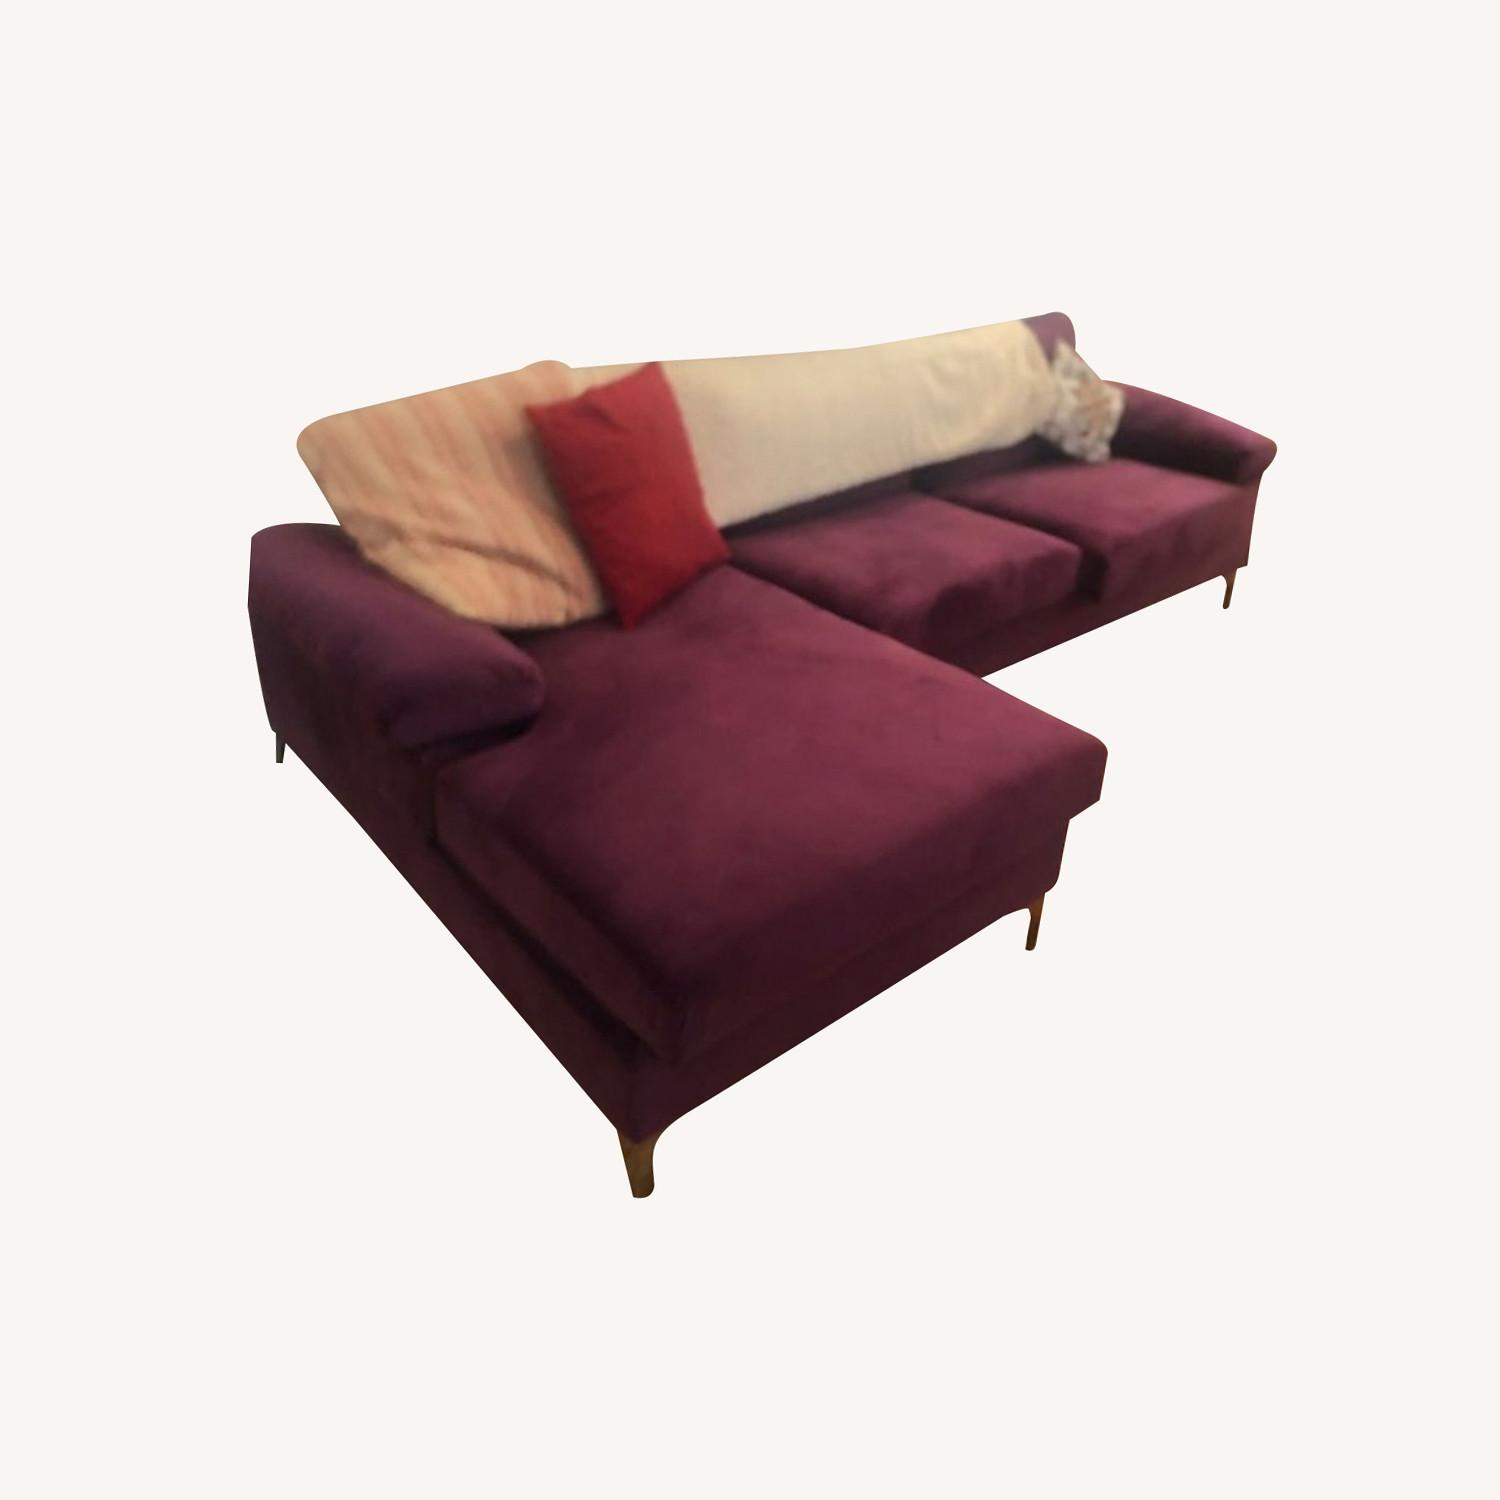 Mobilia Comfy Couch - image-0